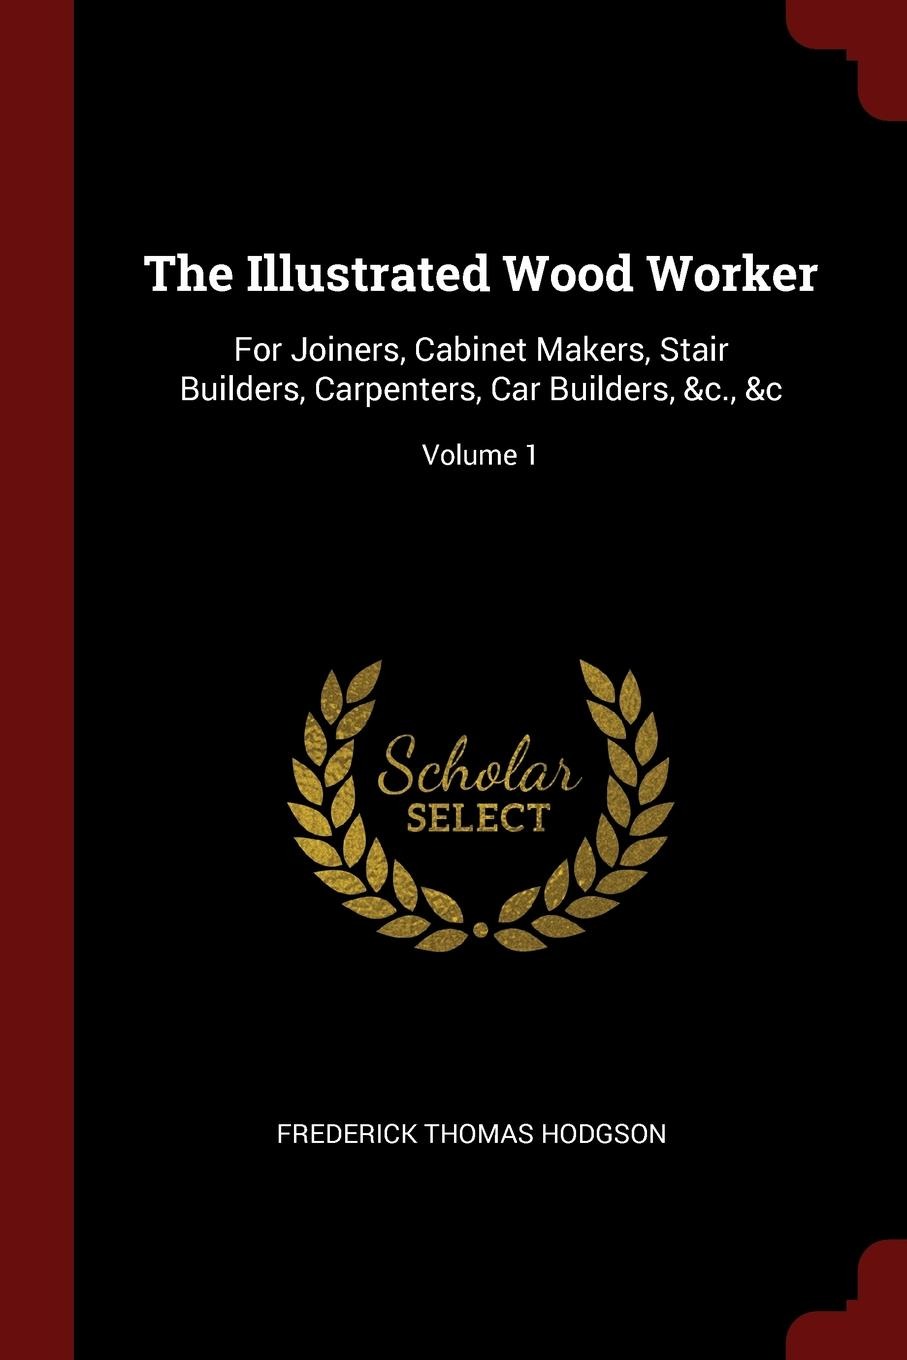 Frederick Thomas Hodgson The Illustrated Wood Worker. For Joiners, Cabinet Makers, Stair Builders, Carpenters, Car .c., .c; Volume 1